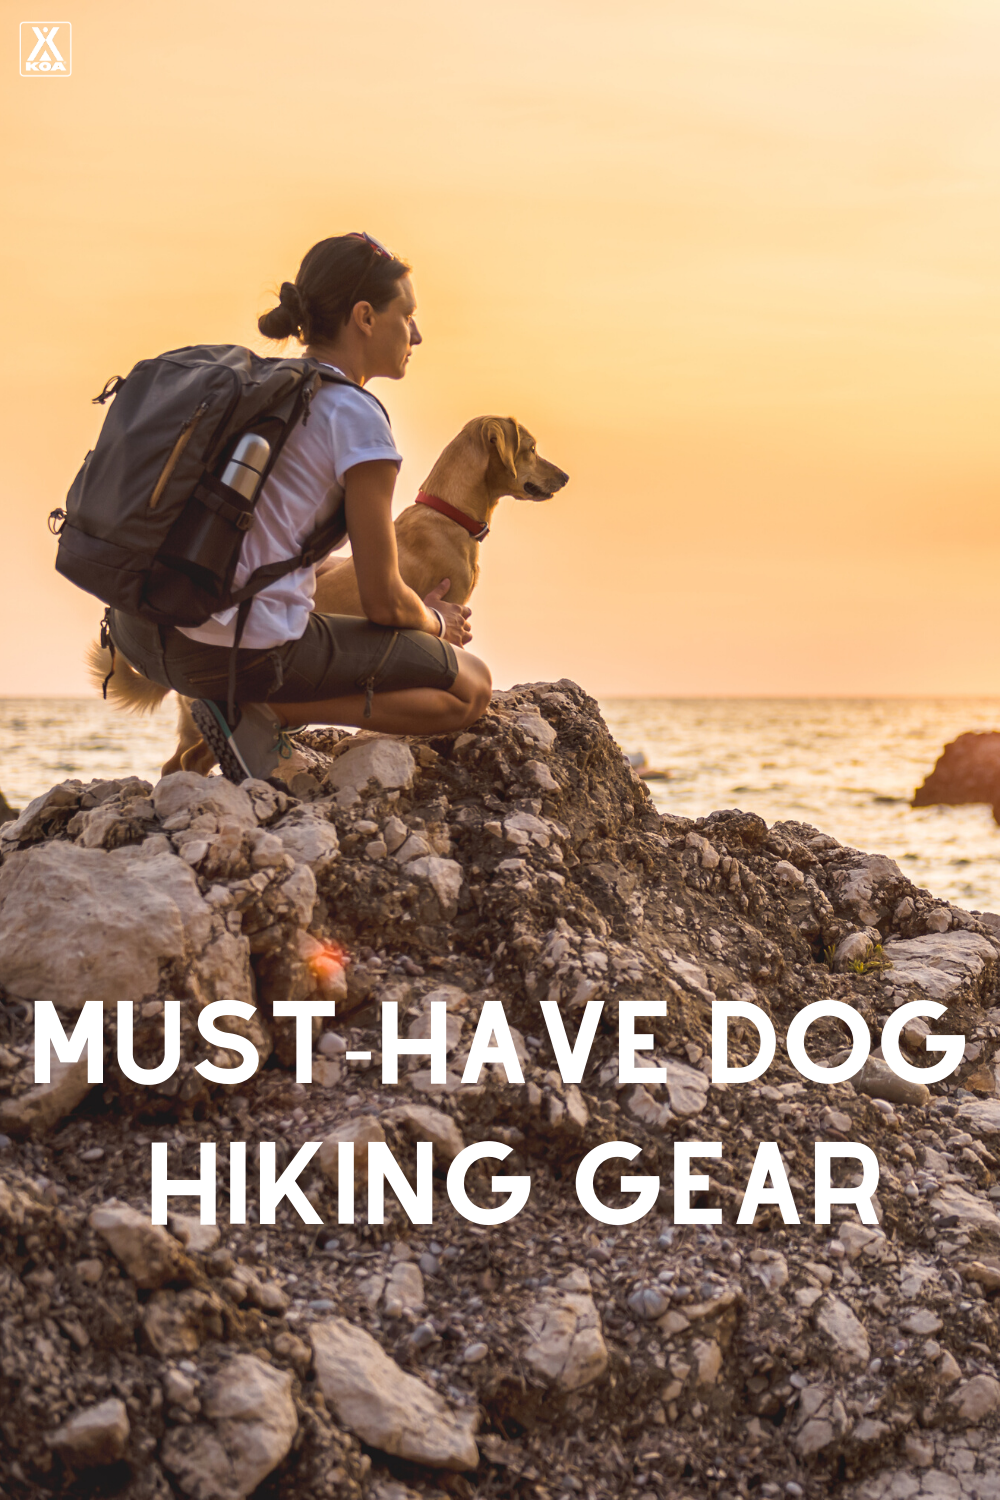 Before you hit the trail with your four-legged friend make sure that they have all the gear they need for a successful outing. Check out our dig hiking gear list here!